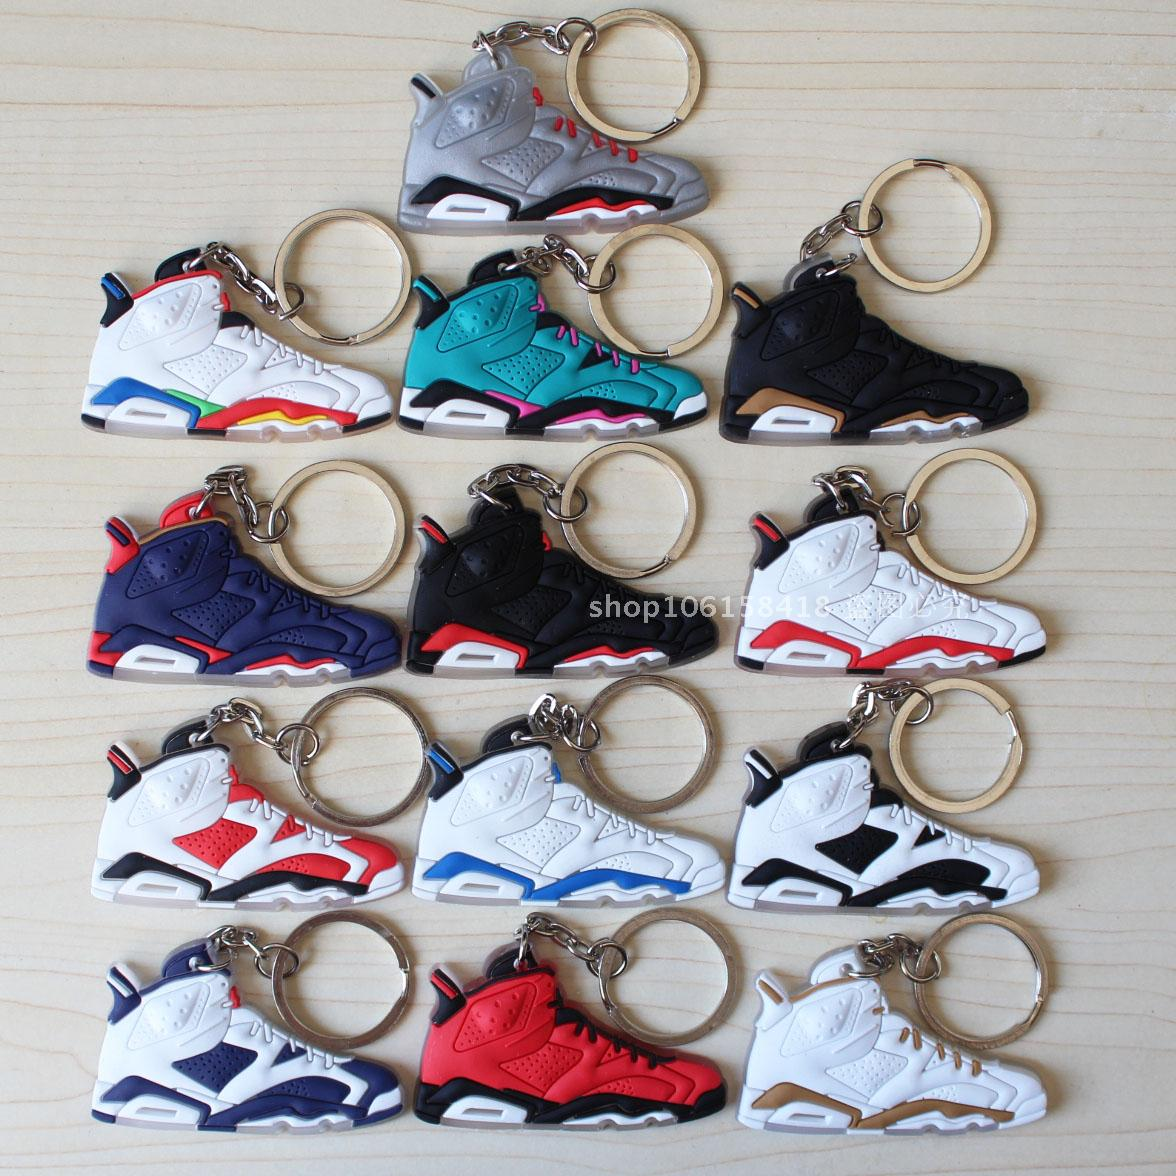 jordan retro 6 key chain, Air Jordan 6 keychain shoes key rings, cute sneaker keychain silicone key holder-in Key Chains from Jewelry & Accessories on ...